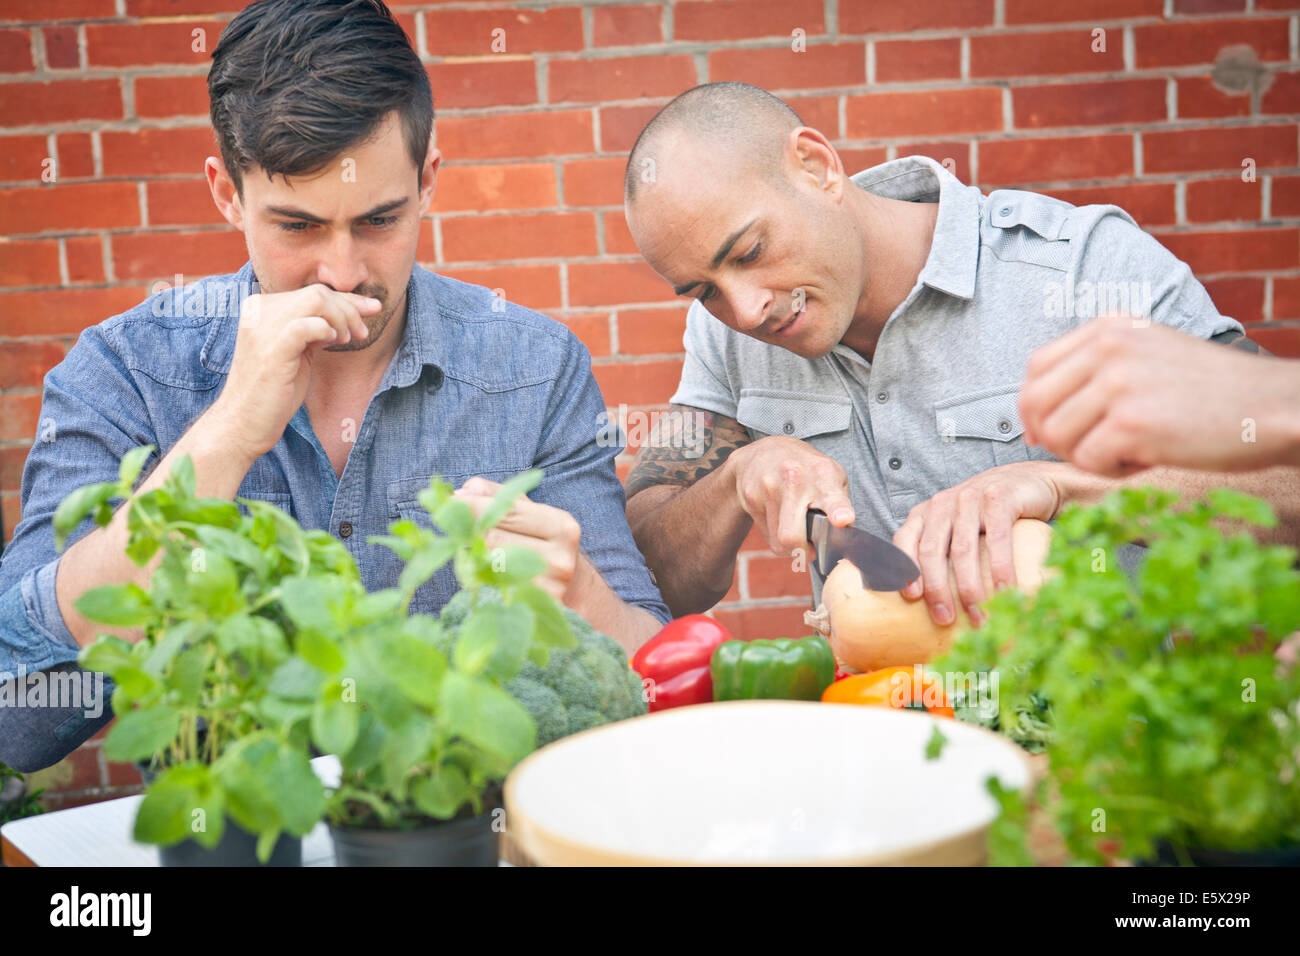 Male friends preparing food with herbs for garden barbecue - Stock Image